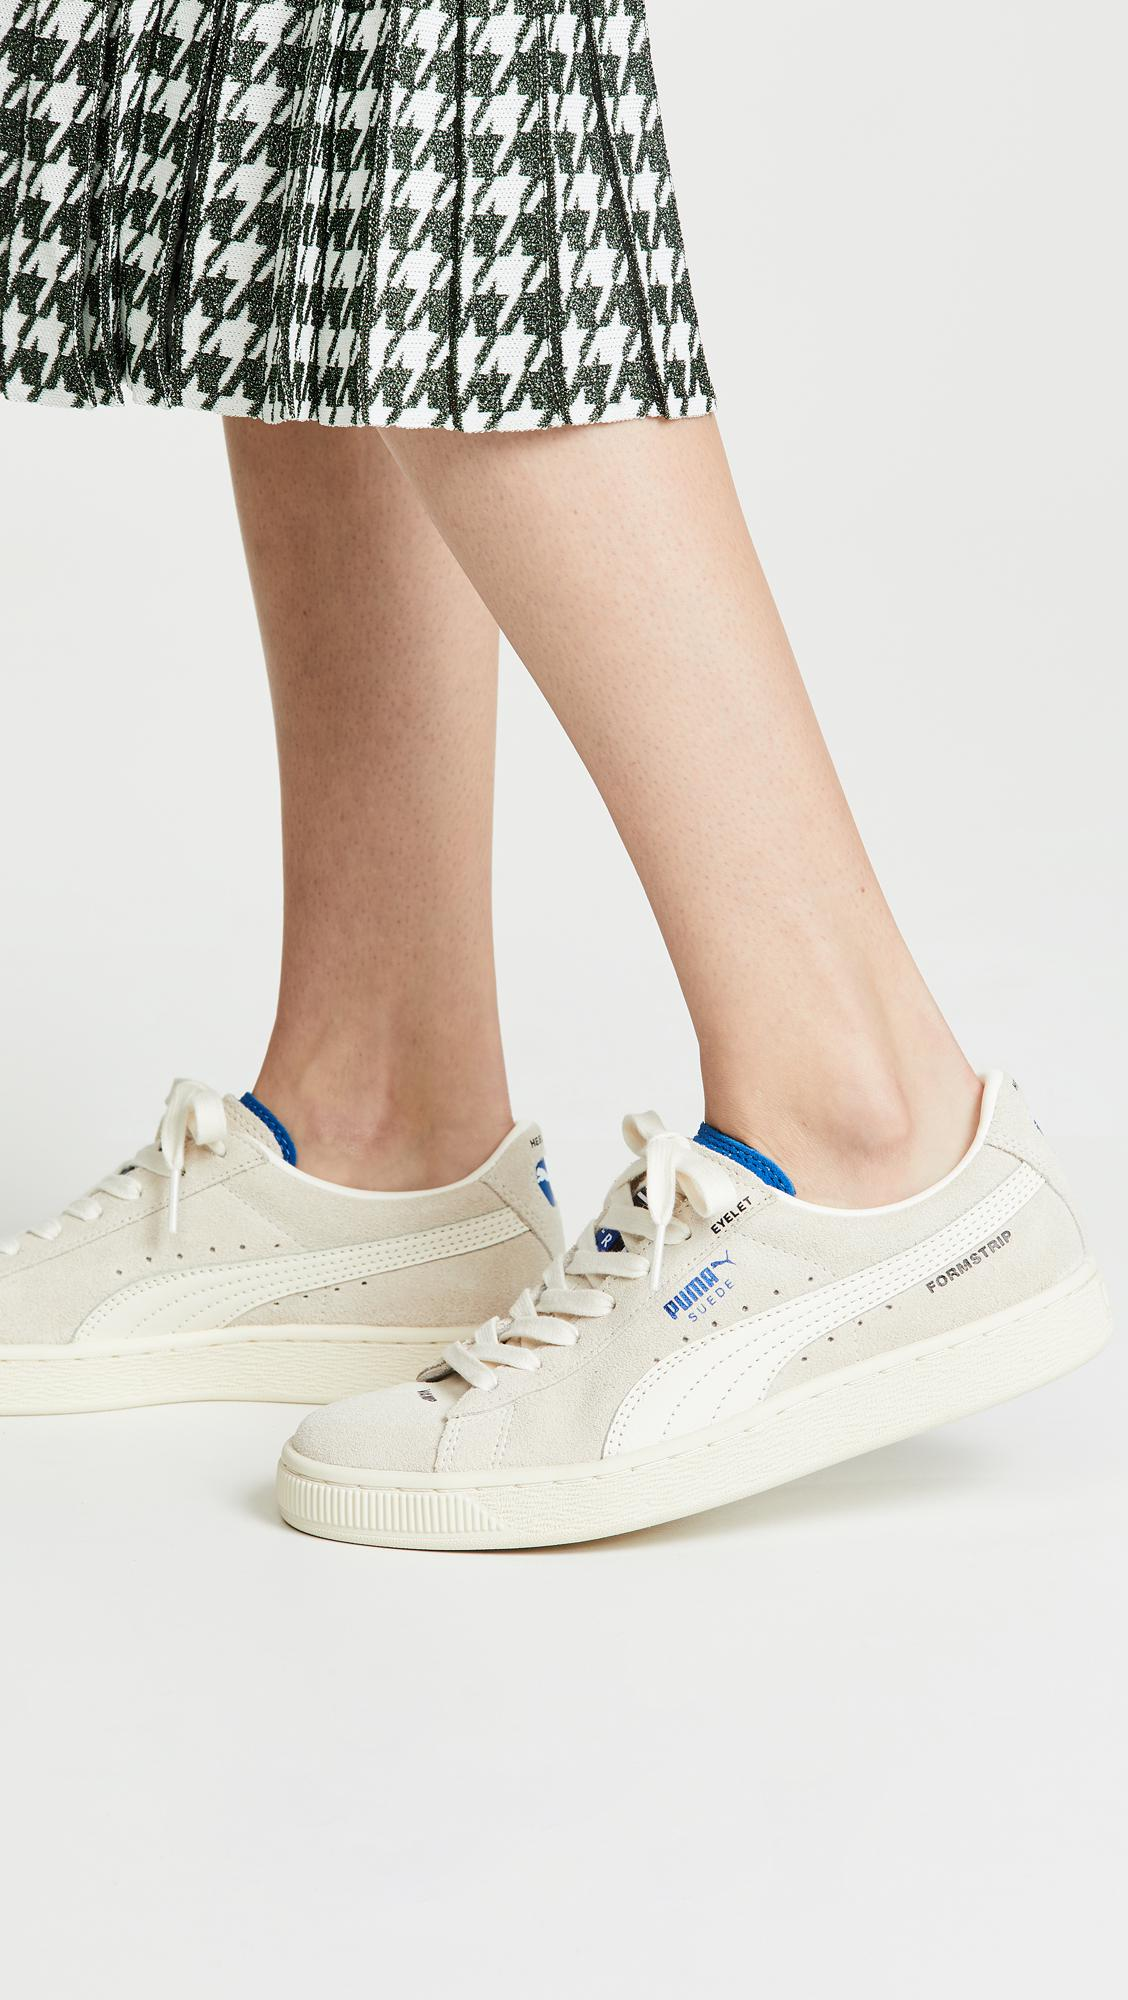 db44b55f06ed Lyst - PUMA X Ader Error Sneakers in White